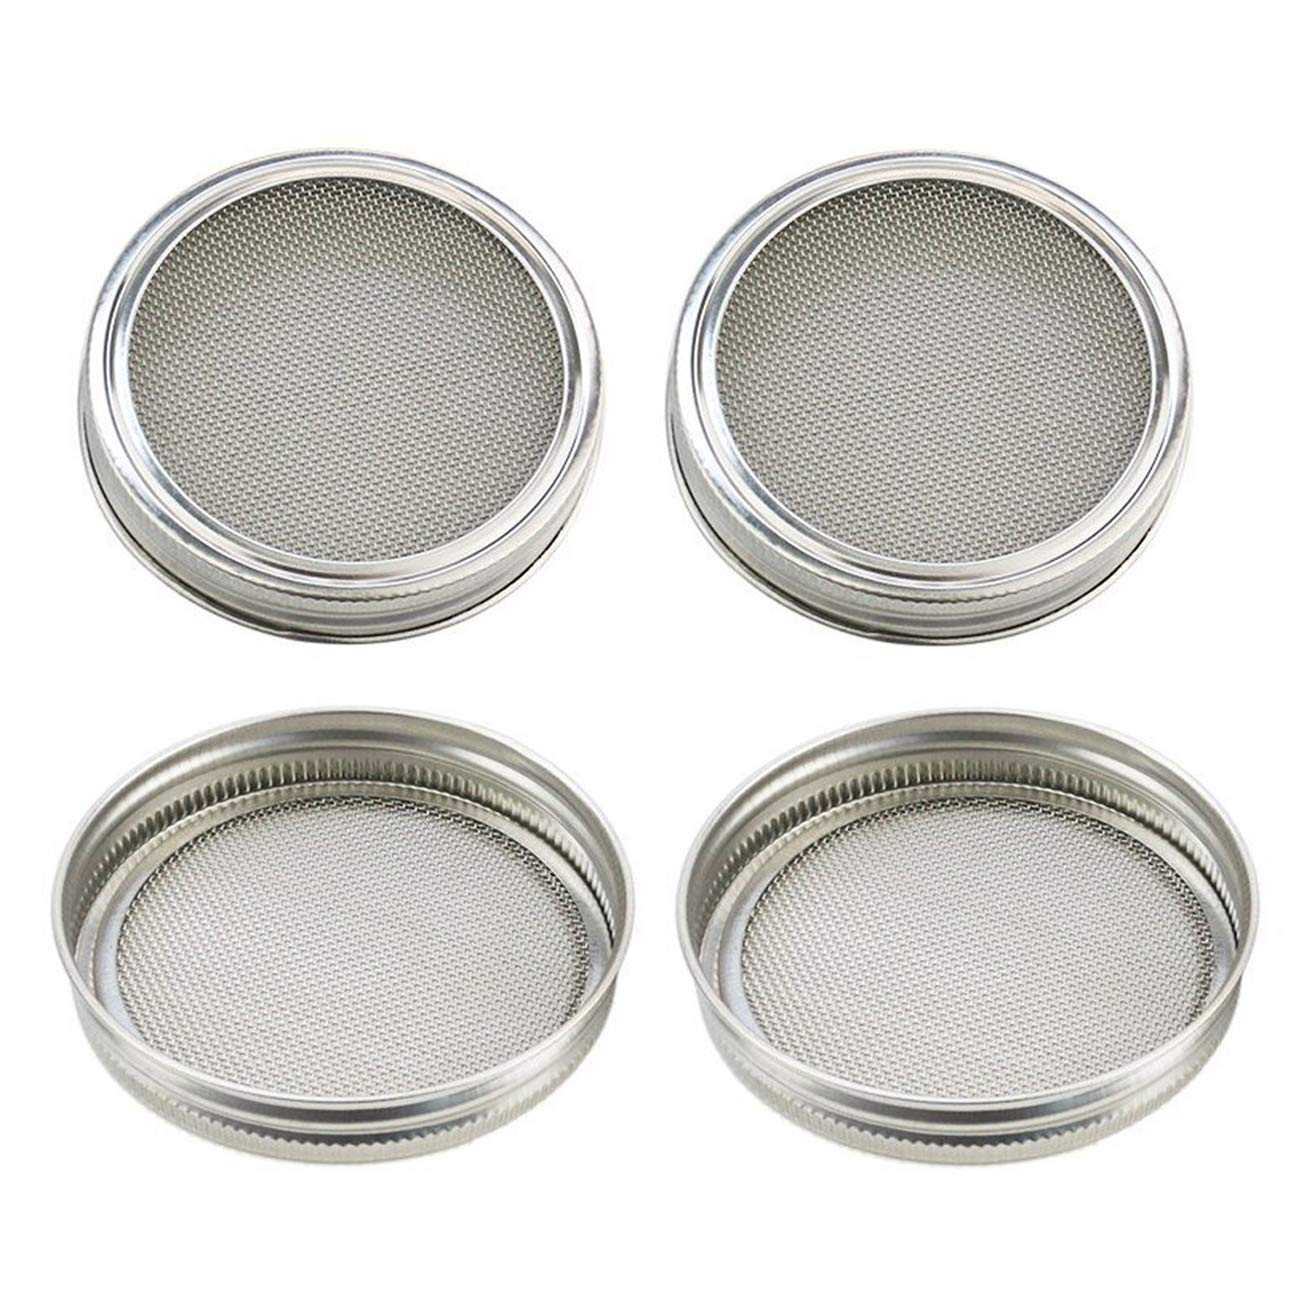 Sunnyglade 4PCS Stainless Steel Sprouting Lids/Sprouting Jar Strainer Lid Fit for Wide Mouth Mason Jars Canning Jars for Making Organic Sprout Seeds (Silver)